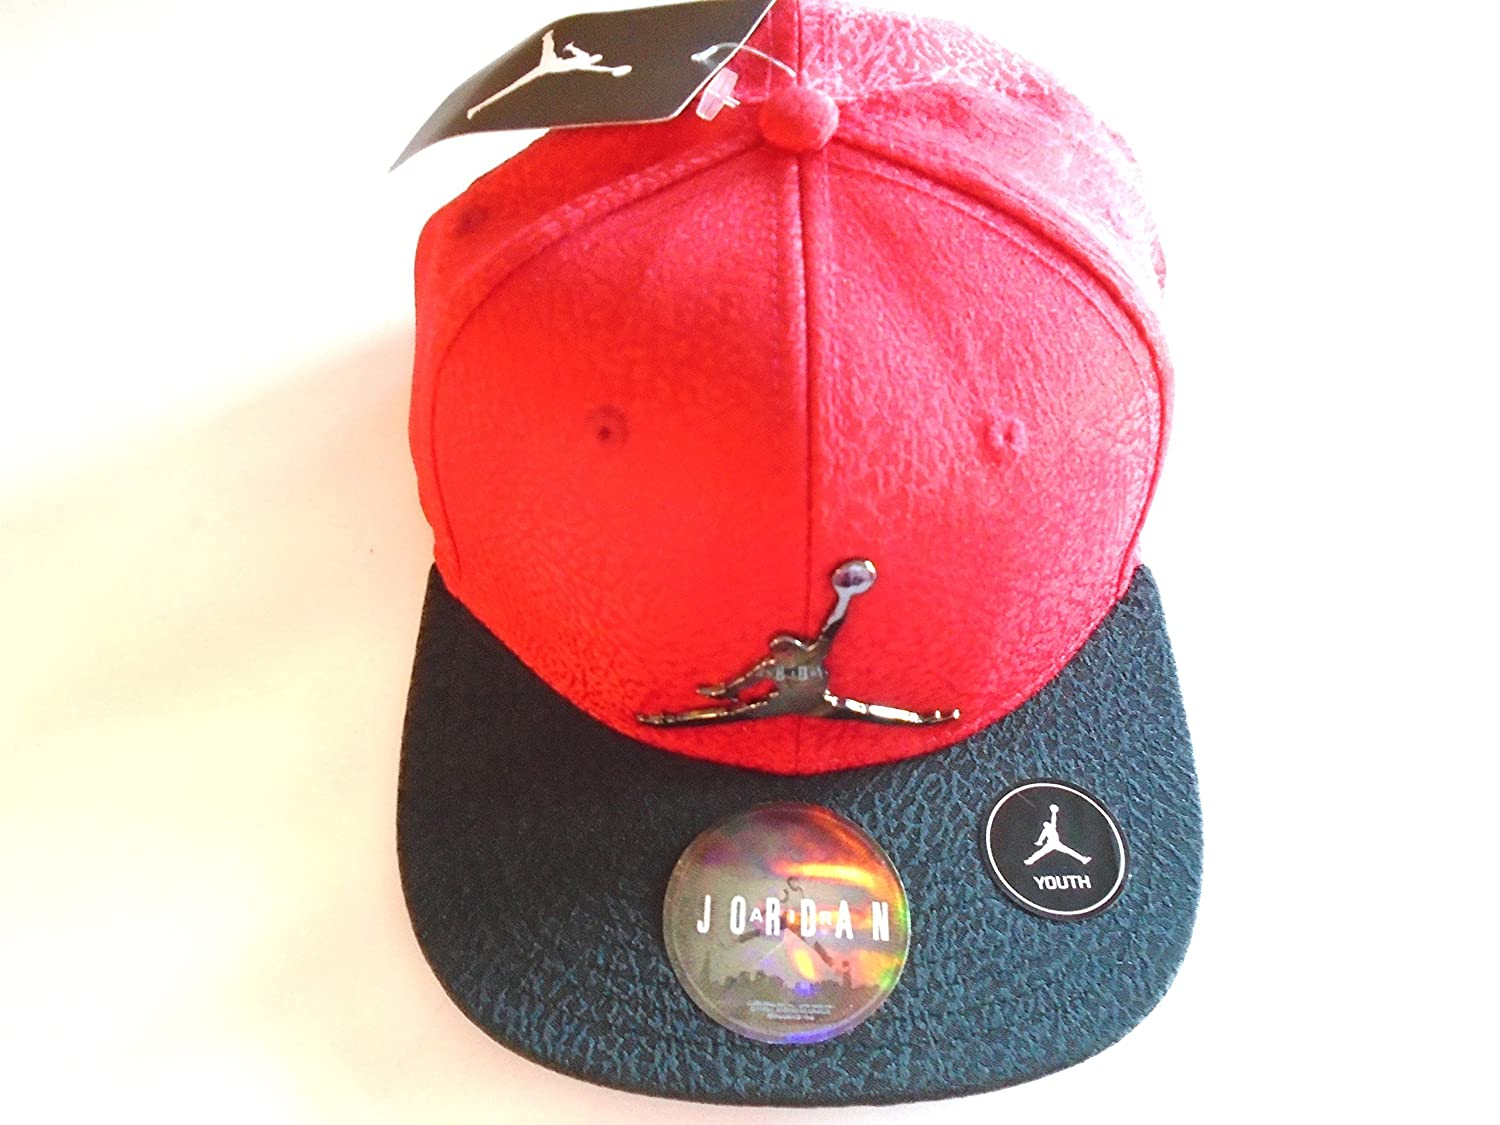 3c74e7c4a8c Amazon.com  Nike Michael Air Jordan Elephant Print Snapback Cap 8-20 Hat  (Bull s Red Black with Iconic Metallic Silver Air Illusion Logo)  Baby